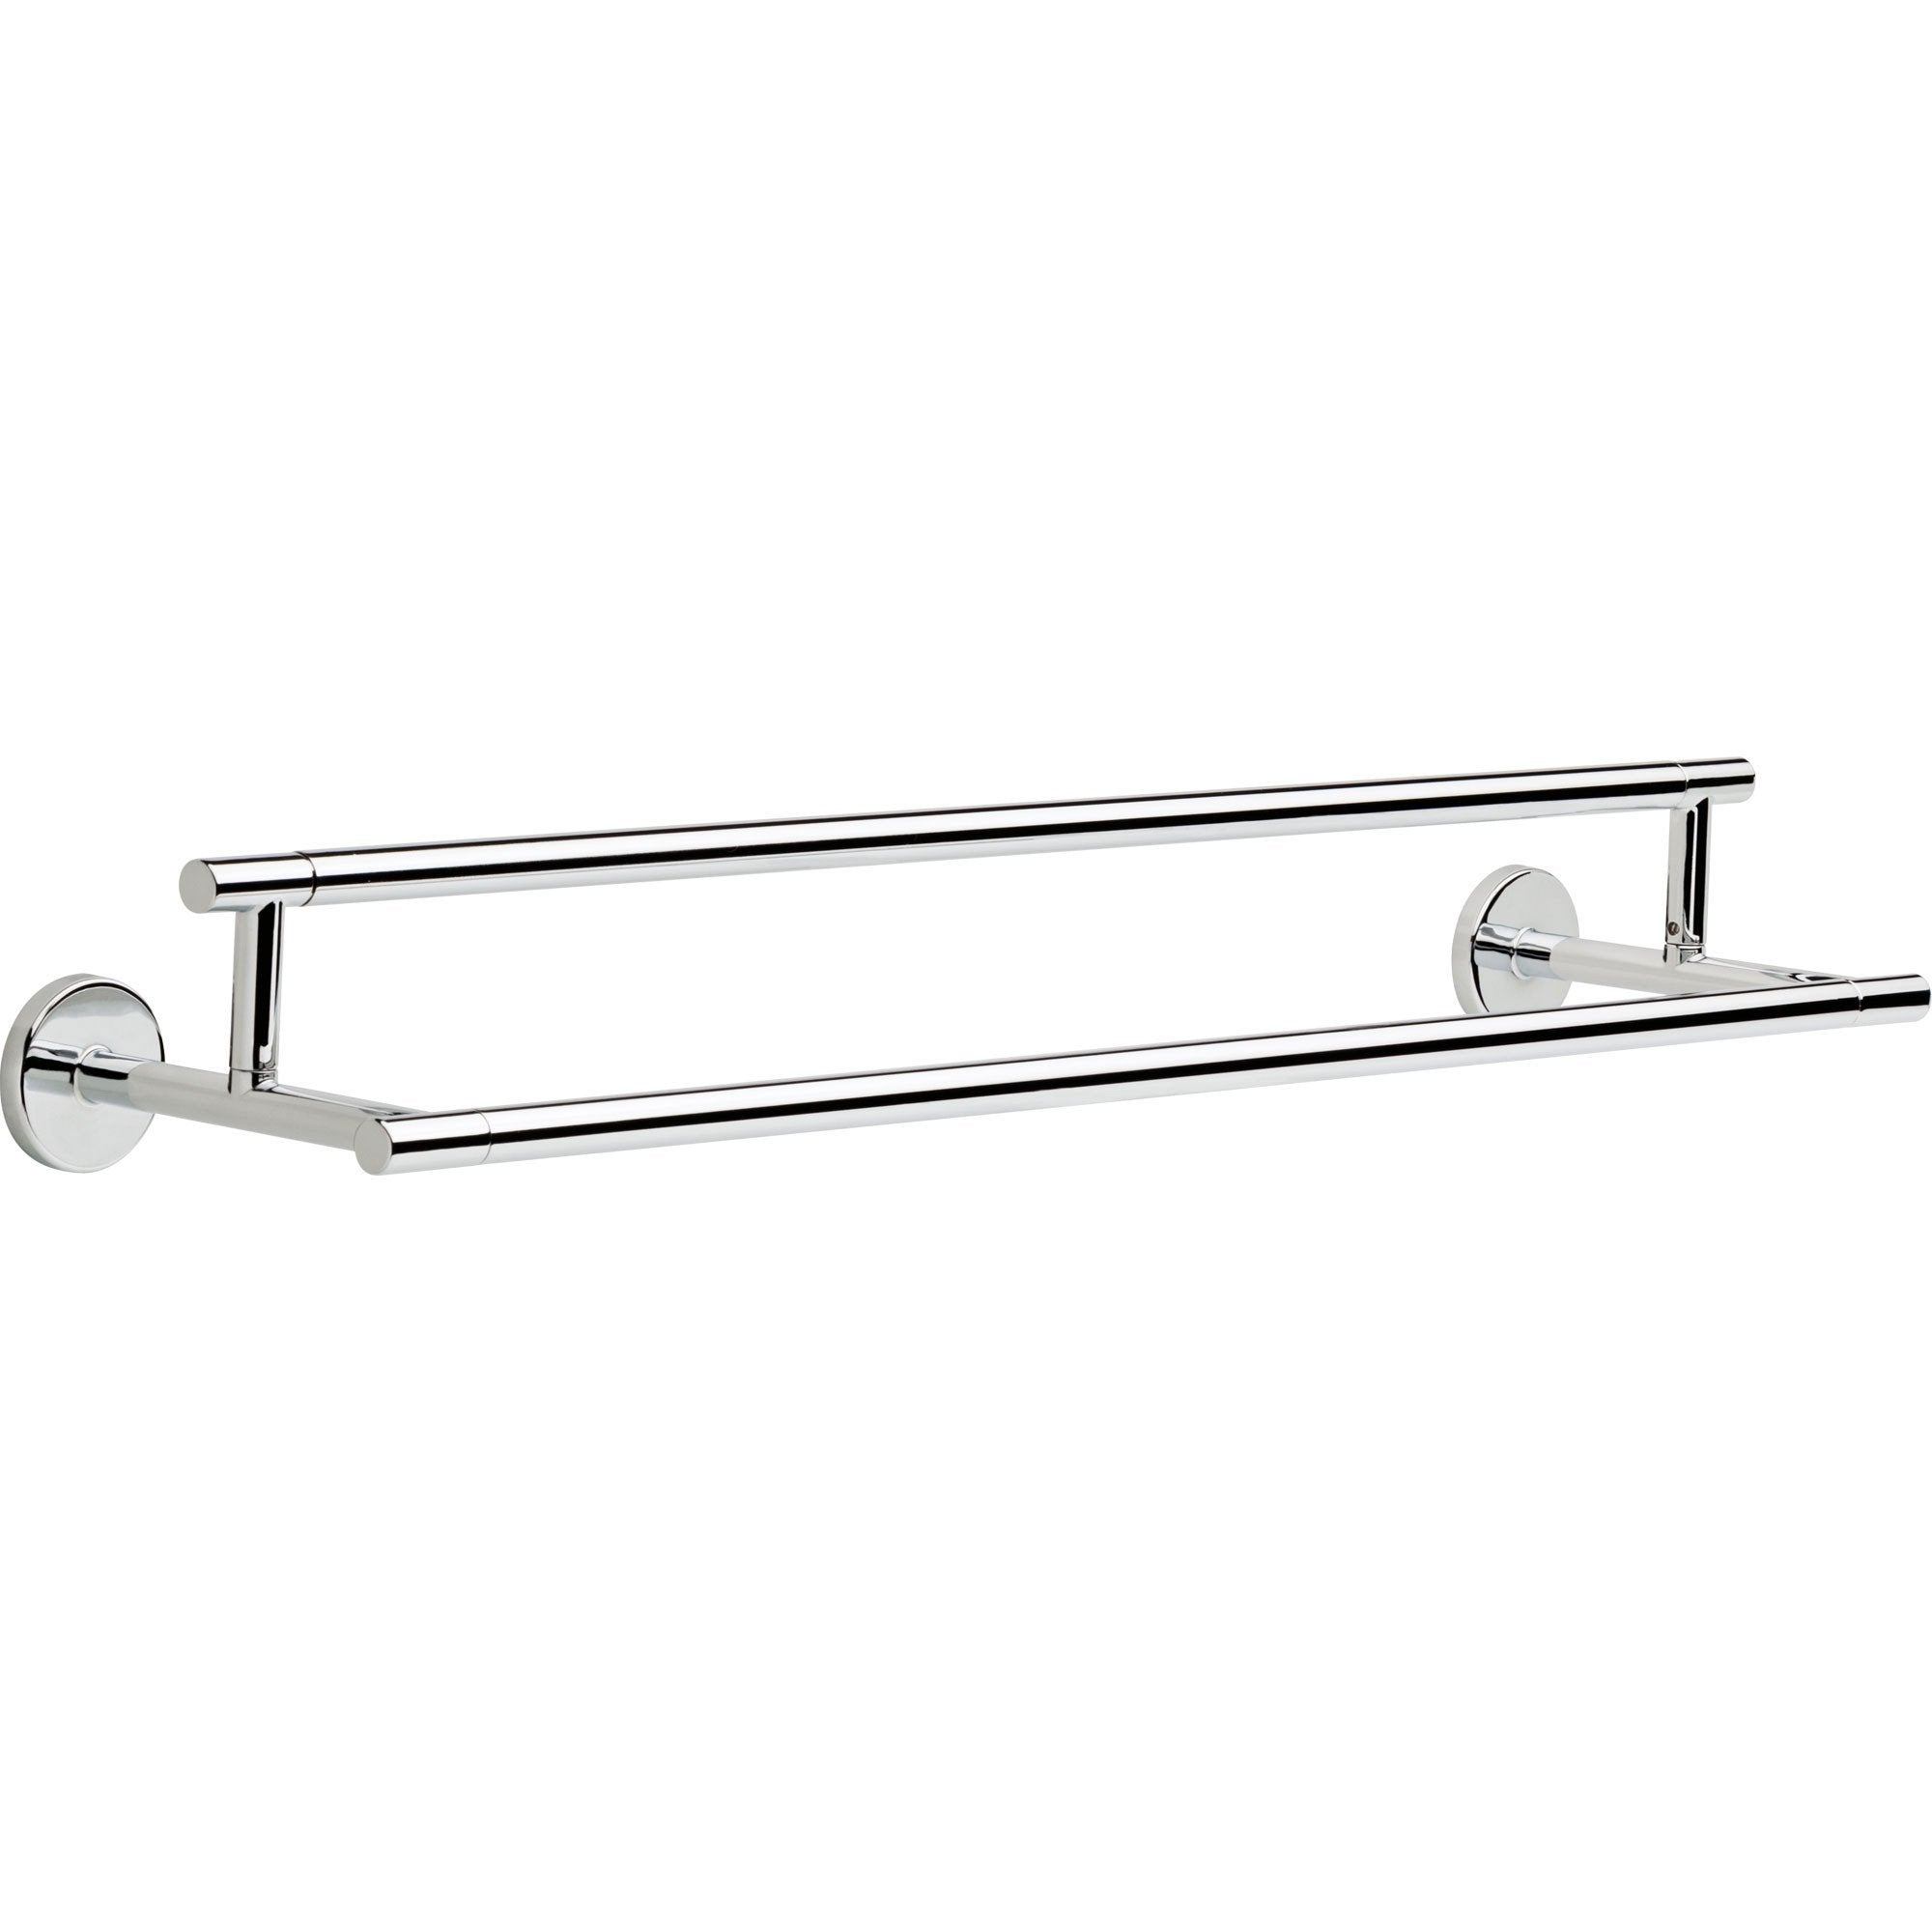 Delta Trinsic Modern Contemporary 24 inch Chrome Double Towel Bar 638712